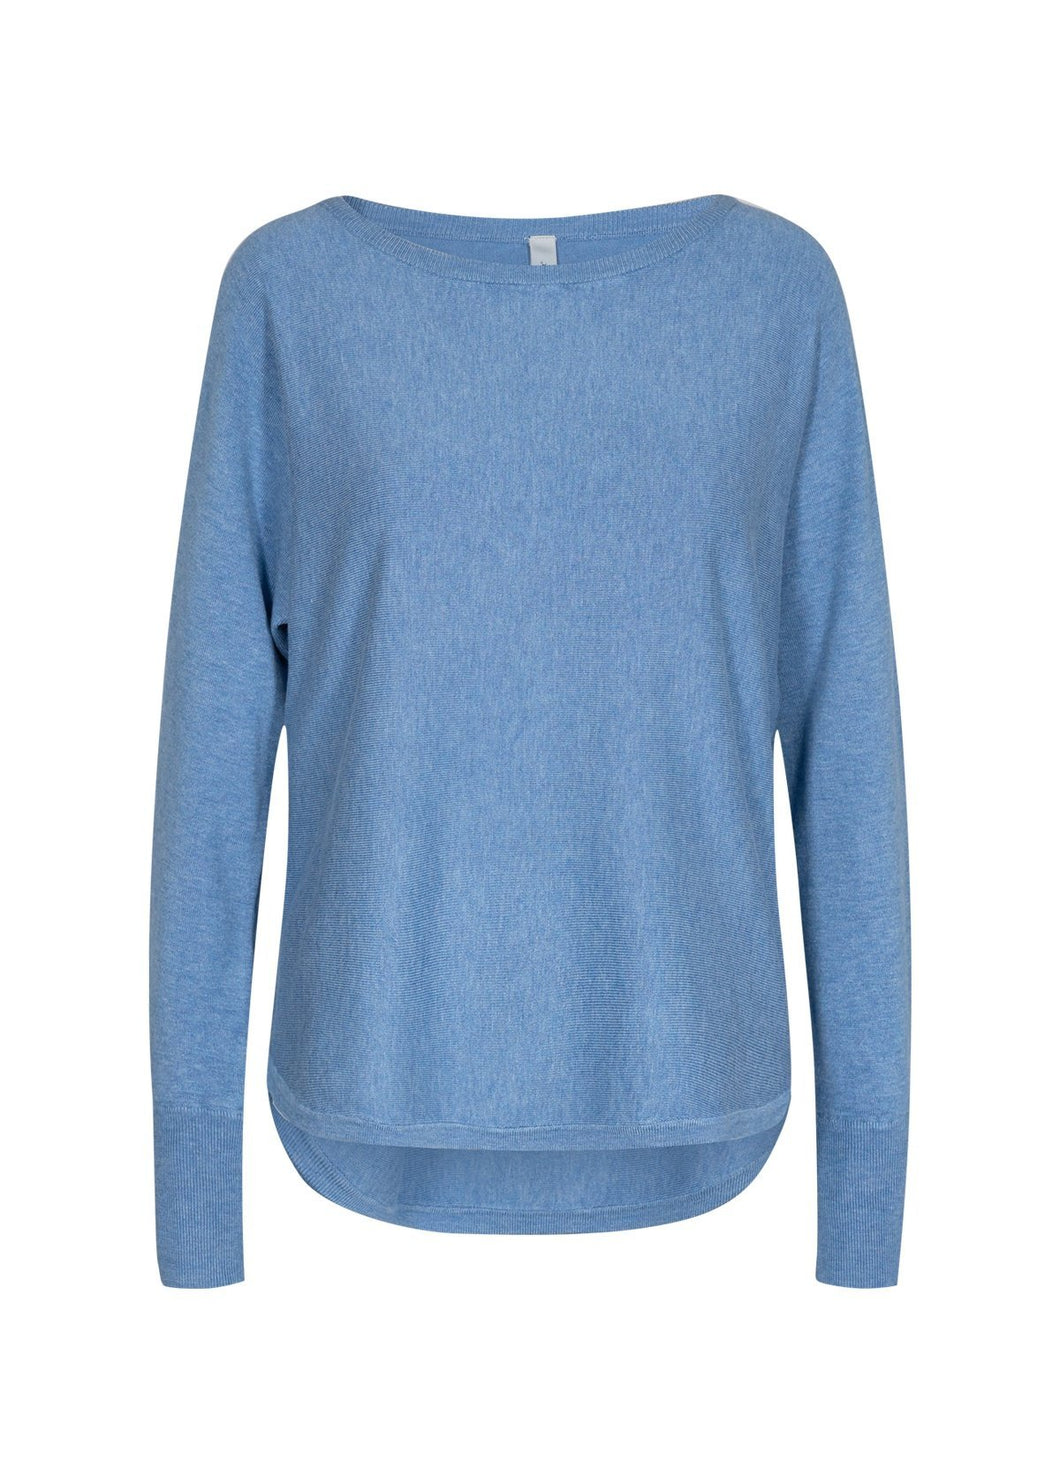 Dollie Pullover in Blue - Renaissance Boutiques Ireland